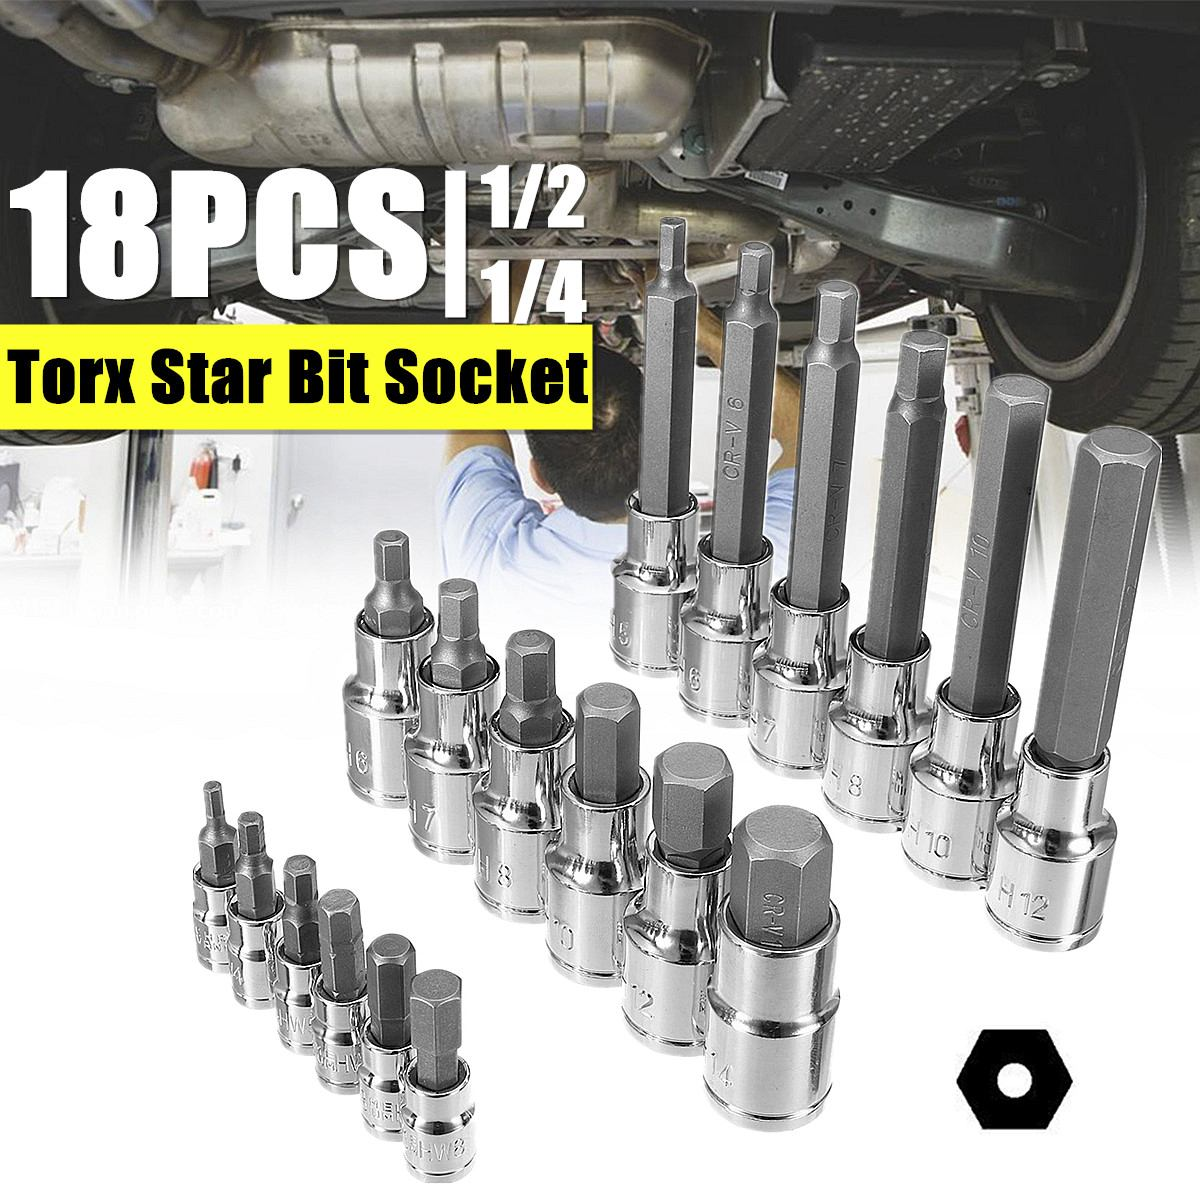 18pc Torx Star Bit Socket Garage Workshop Tool Set 1/2 1/4 inch Long Drive Professional Durability for Locomotive Assembly18pc Torx Star Bit Socket Garage Workshop Tool Set 1/2 1/4 inch Long Drive Professional Durability for Locomotive Assembly